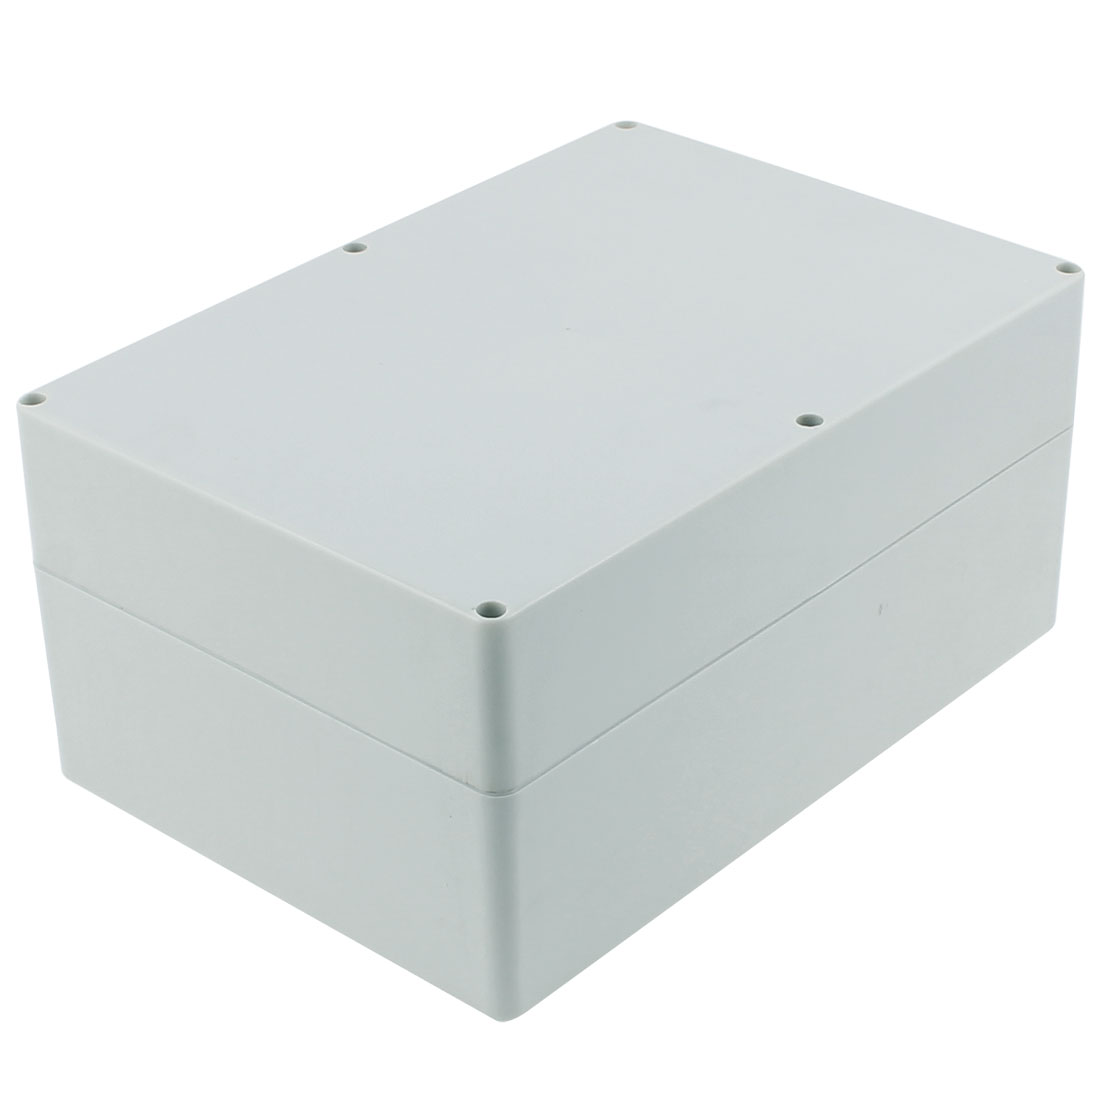 263 x 182 x 125mm Dustproof IP65 Junction Box DIY Terminal Connection Enclosure